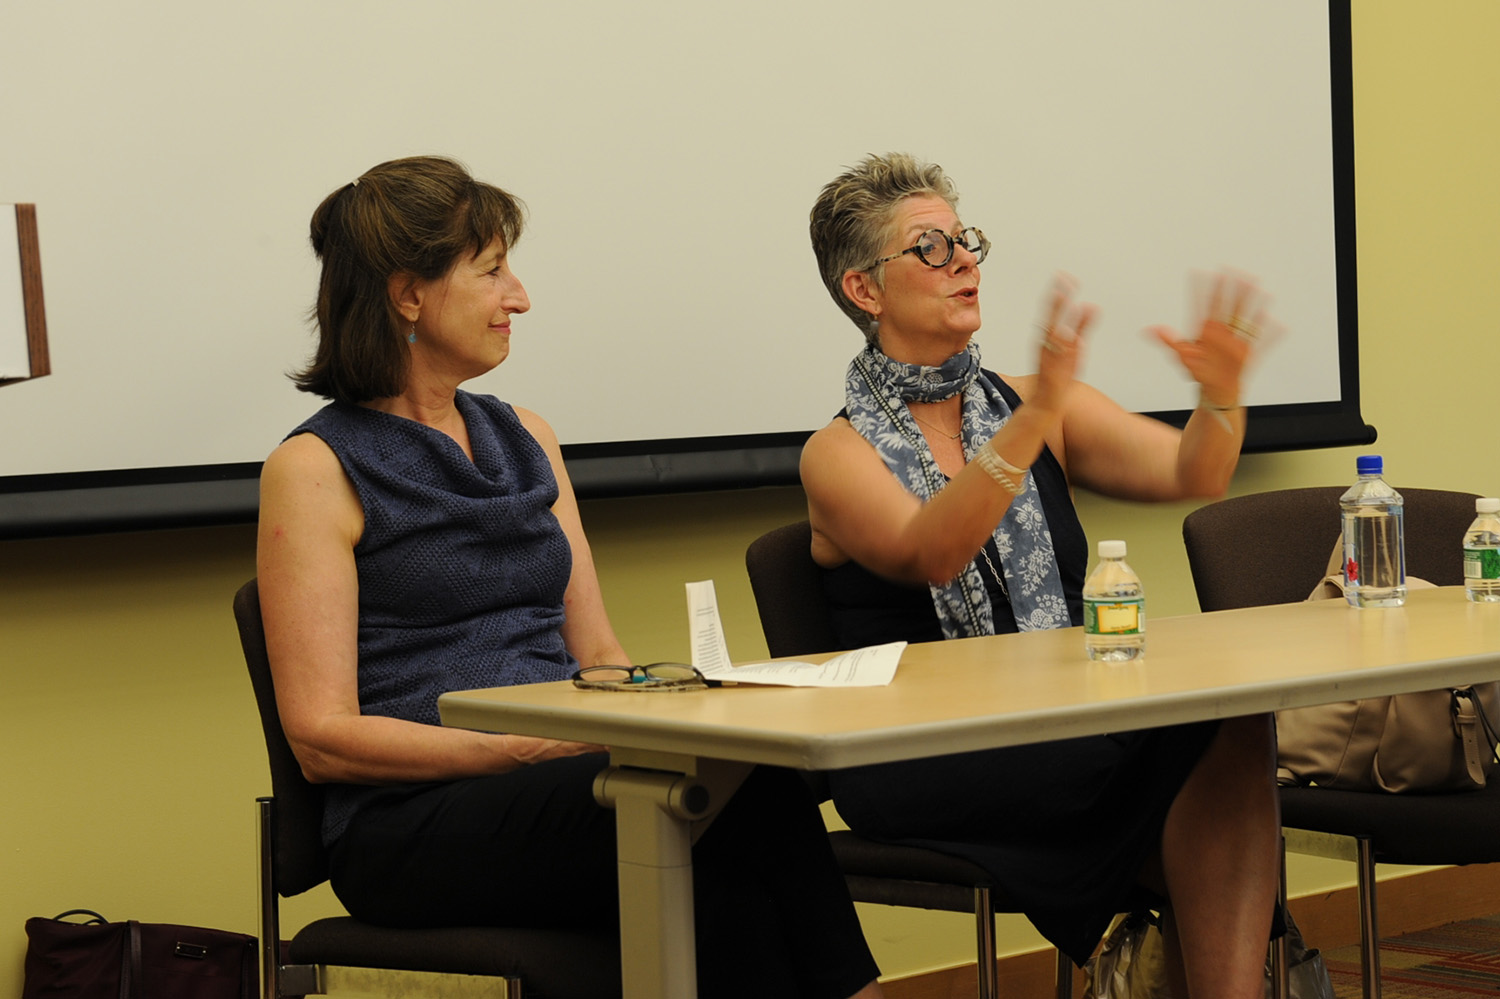 Literary agent Vicky Bijur '75 (left) and book editor Pamela Dorman '79 (right) provided insight into the publishing process.